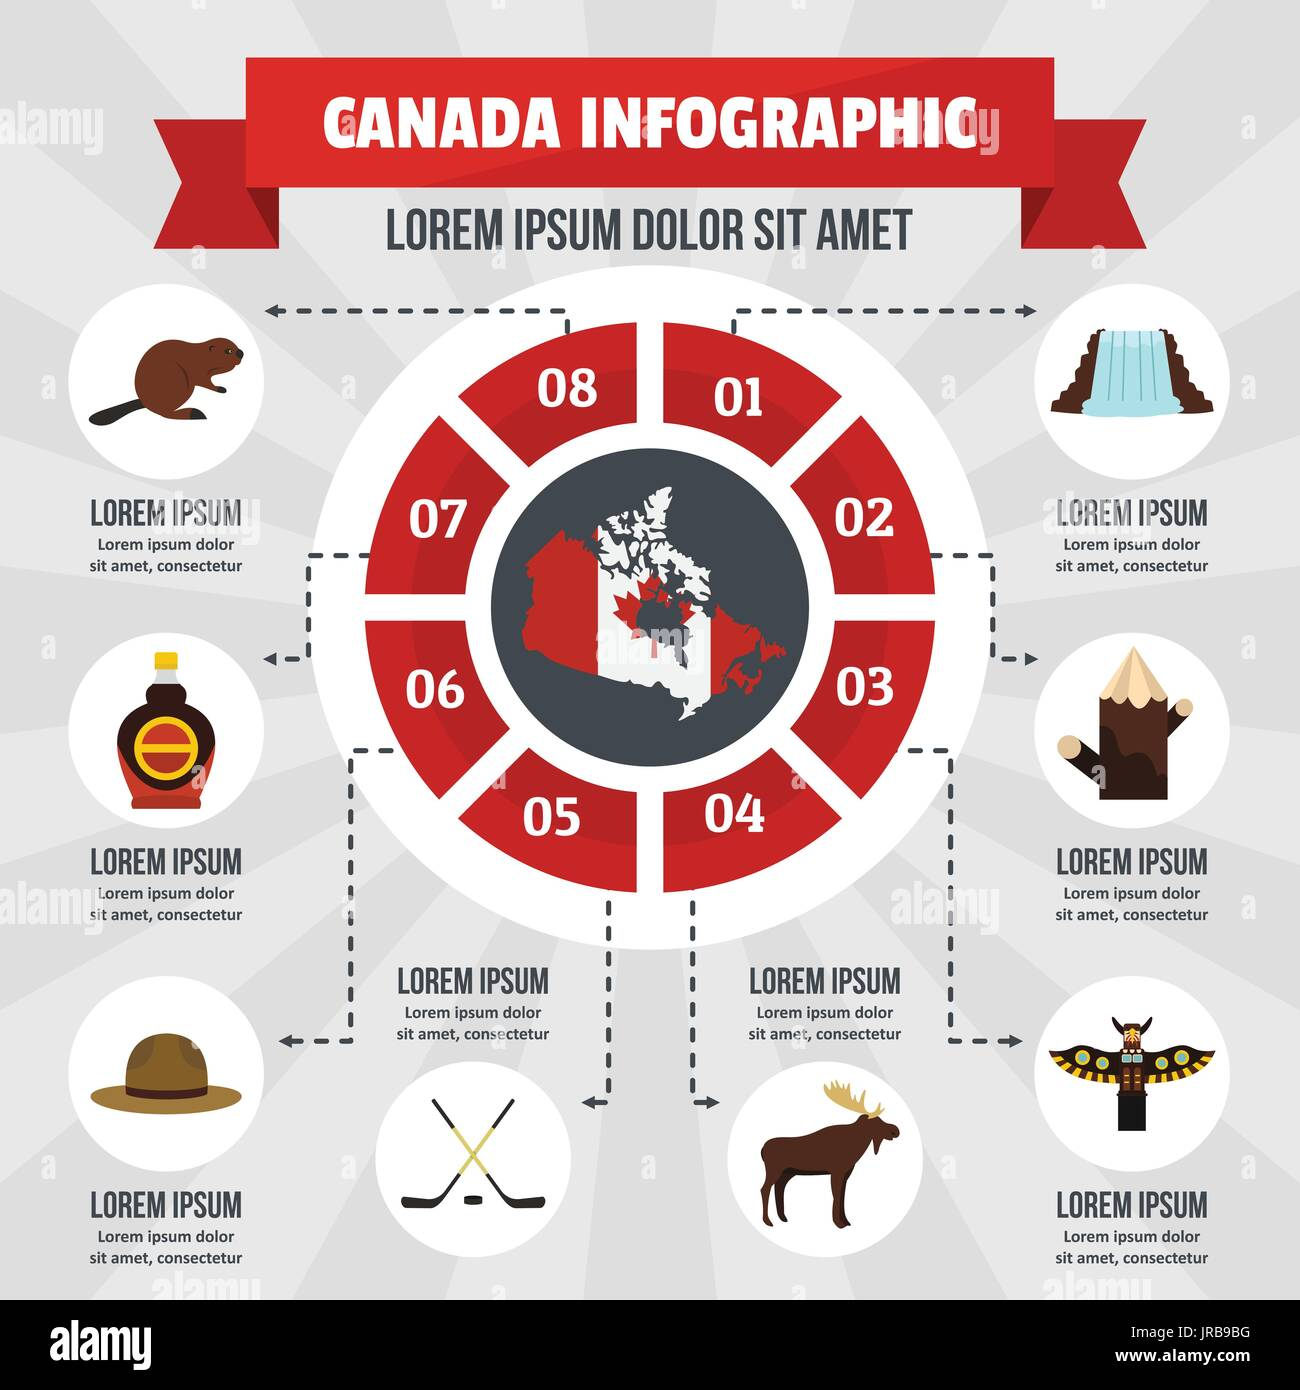 Canada infographic concept, flat style - Stock Image